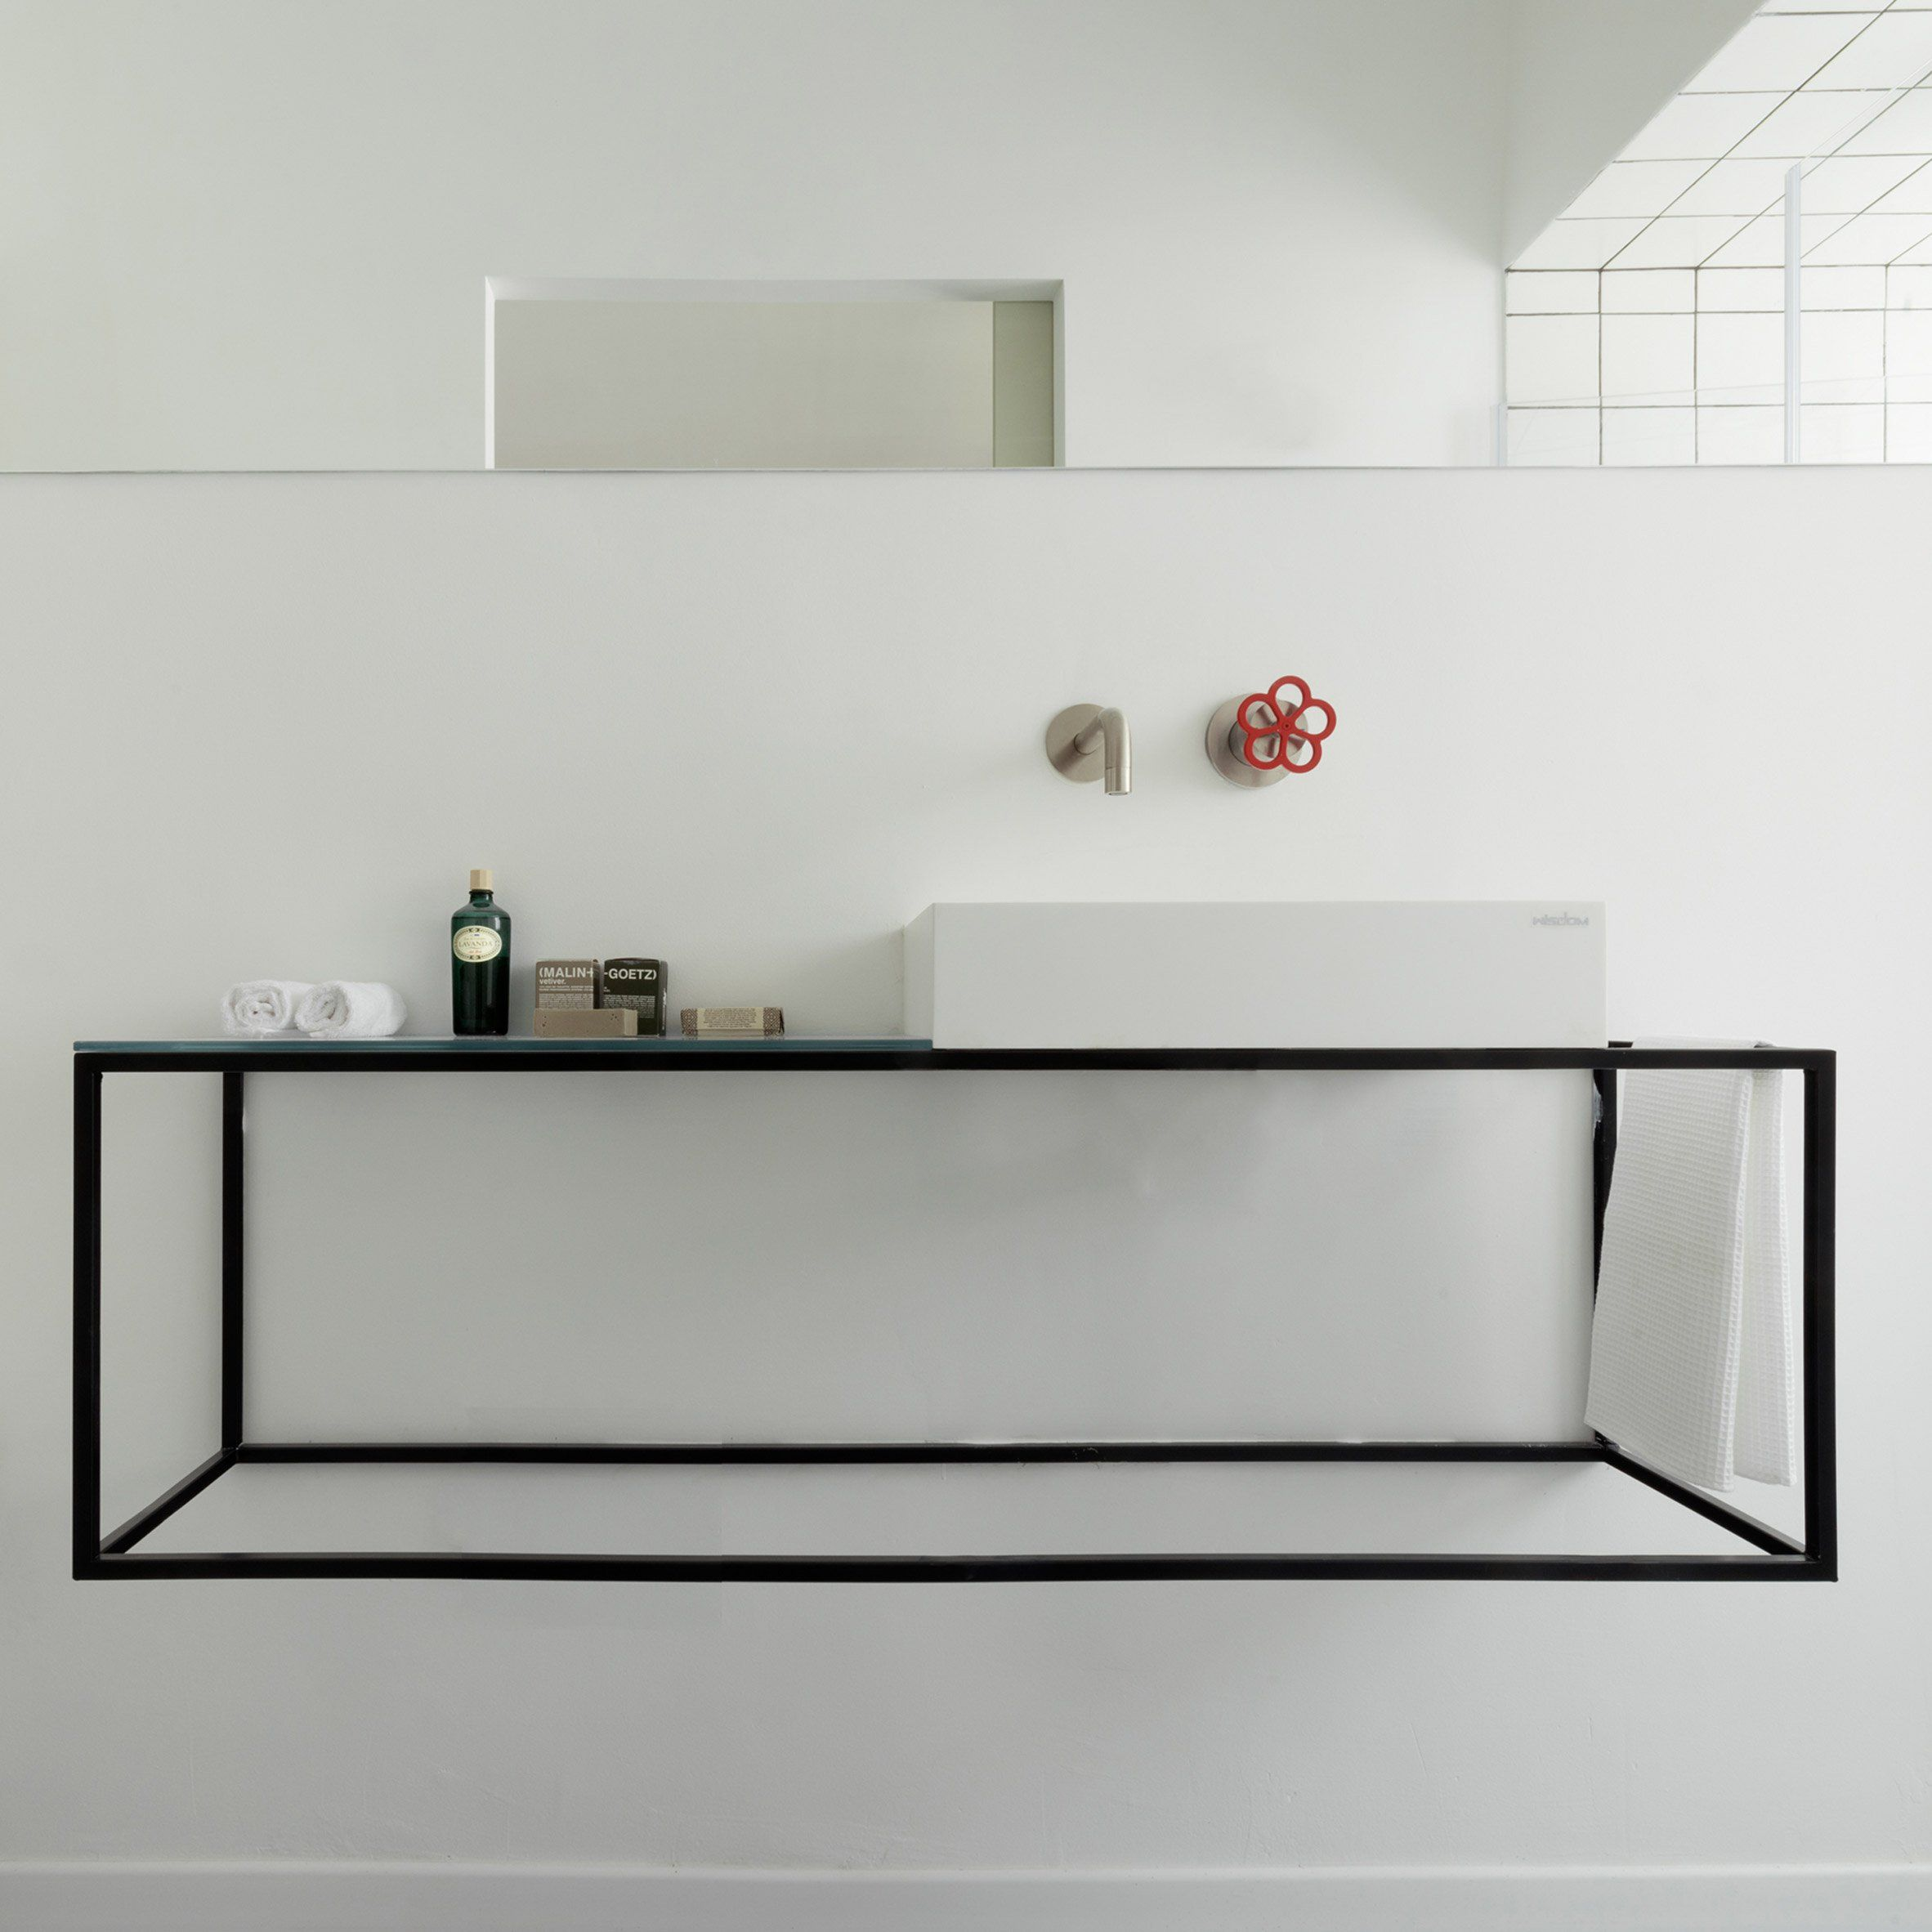 Although Bathrooms Tend To Be The Most Minimal Room In House Weve Rounded Up 10 Of Extreme Examples From Around World